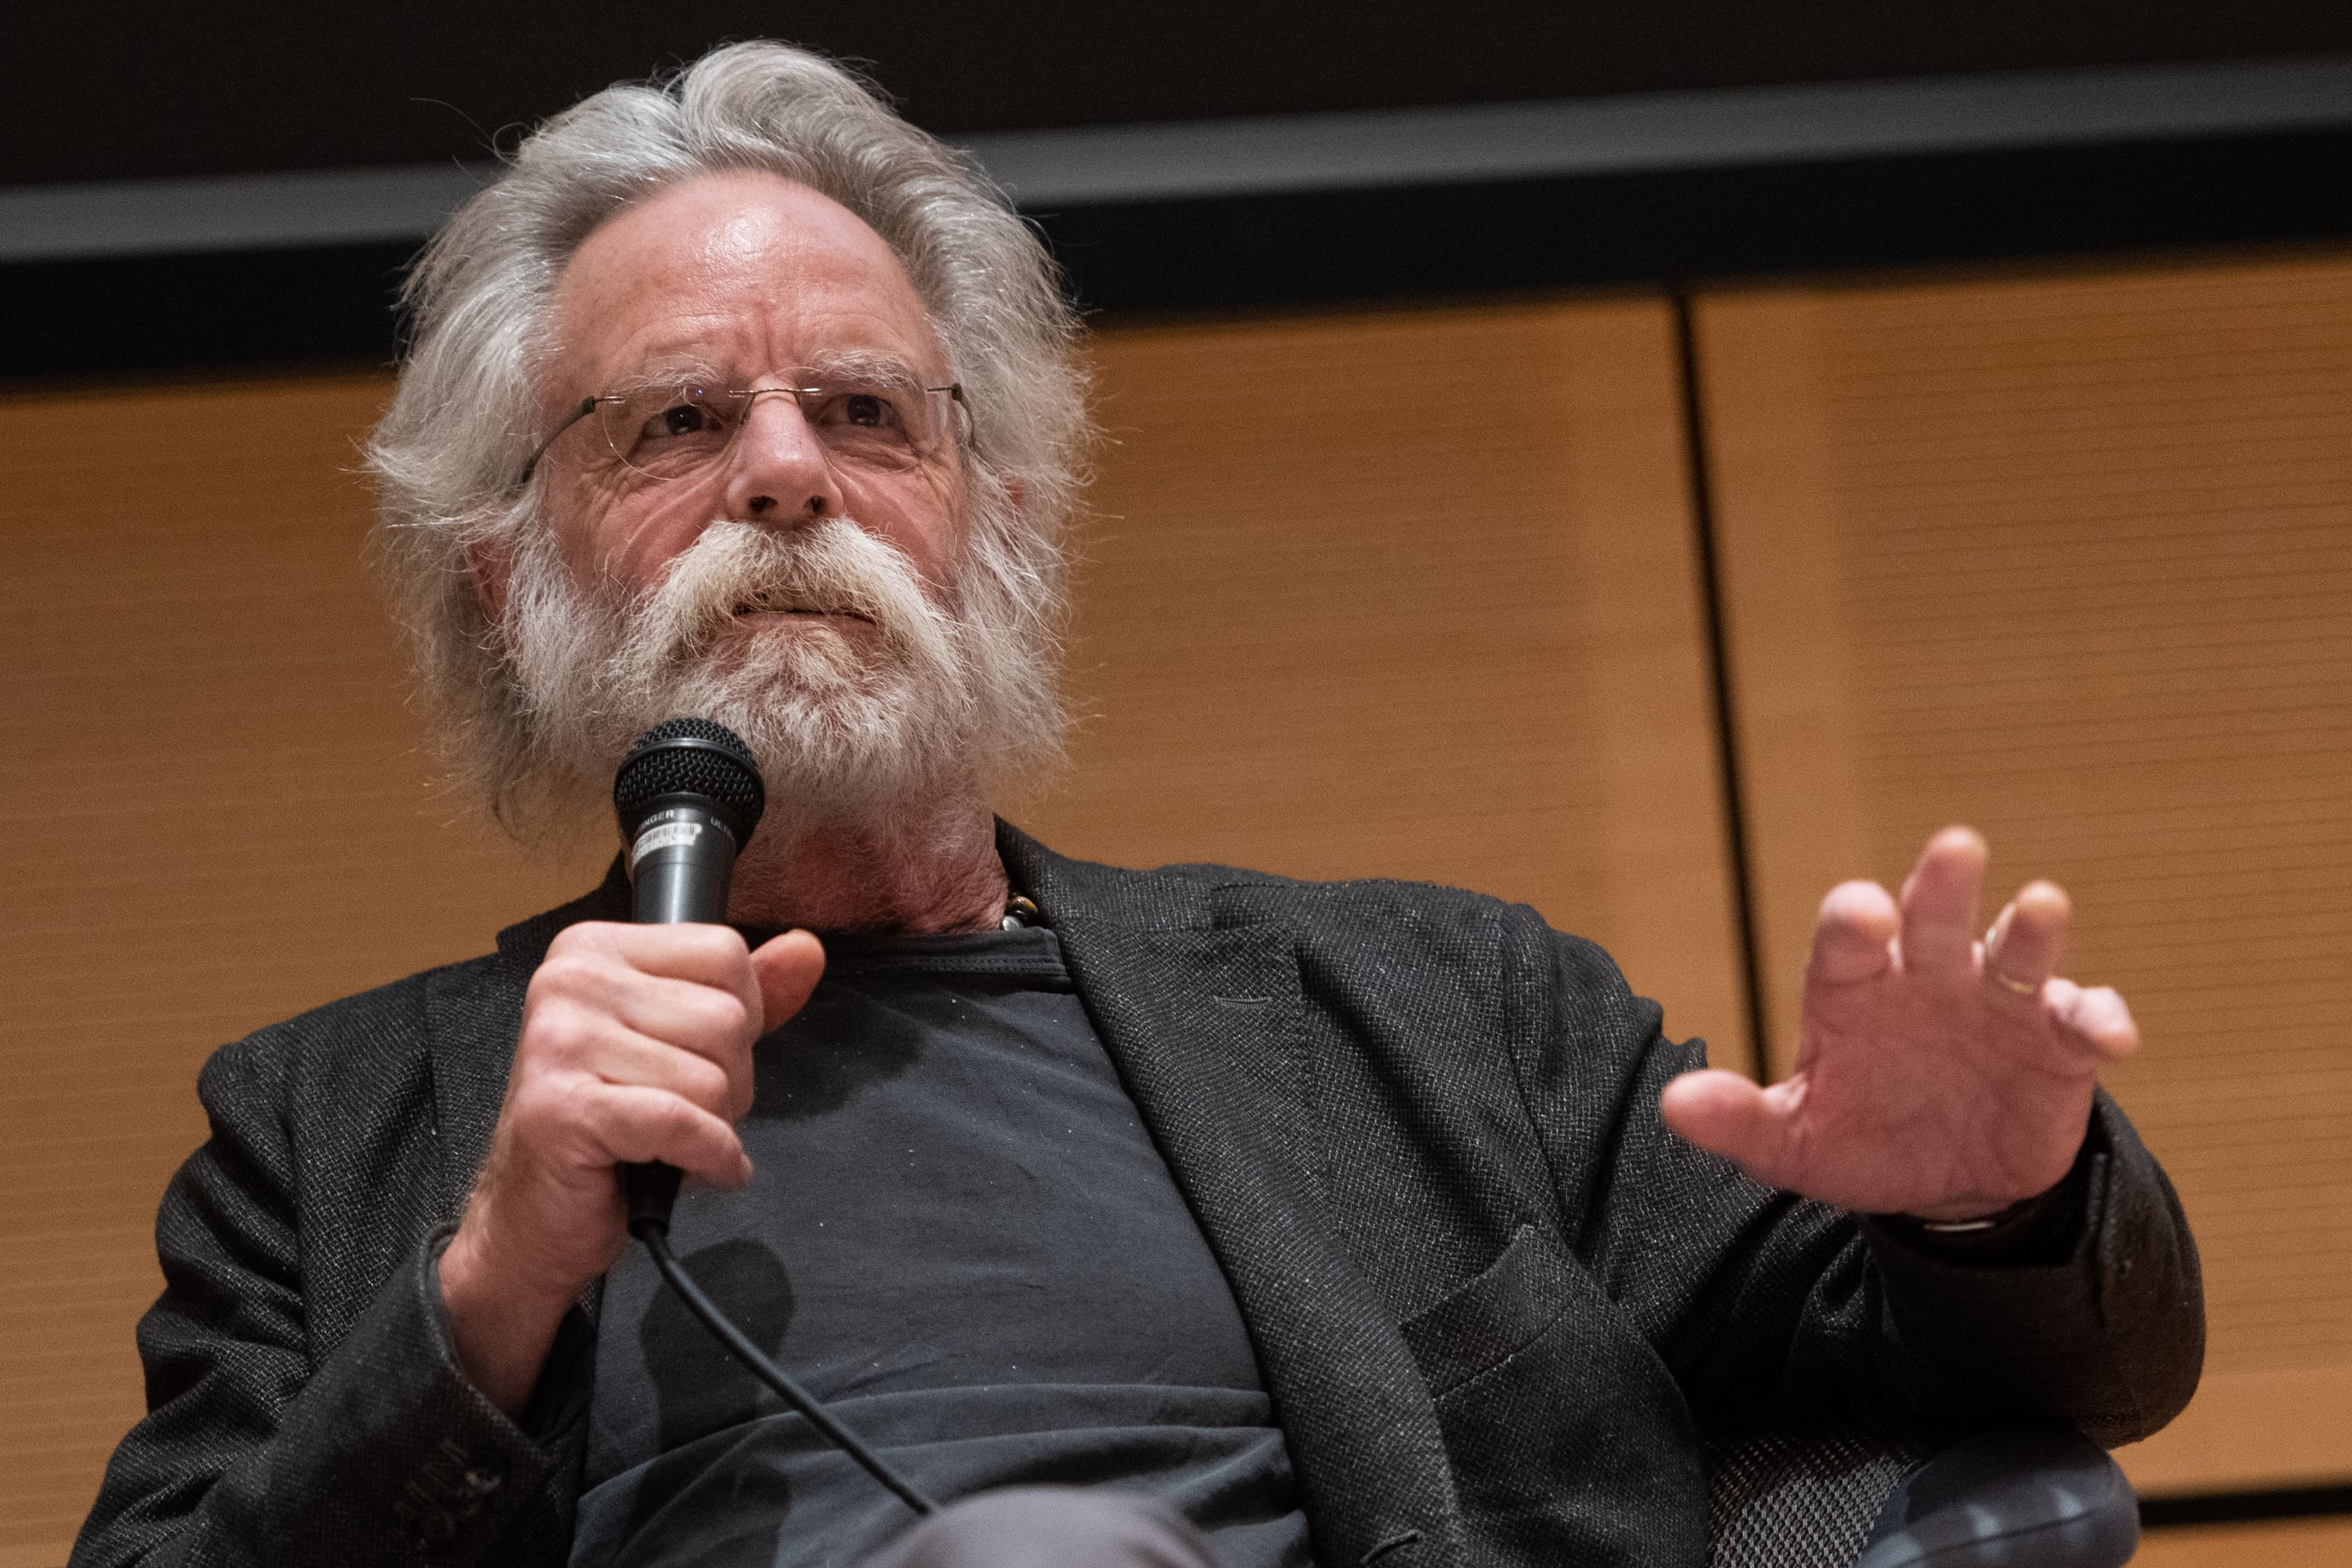 Founding member of the Grateful Dead, Bob Weir, speaks to a group of students and faculty at the Joyce Hergenhan Auditorium on Nov. 7, 2018.